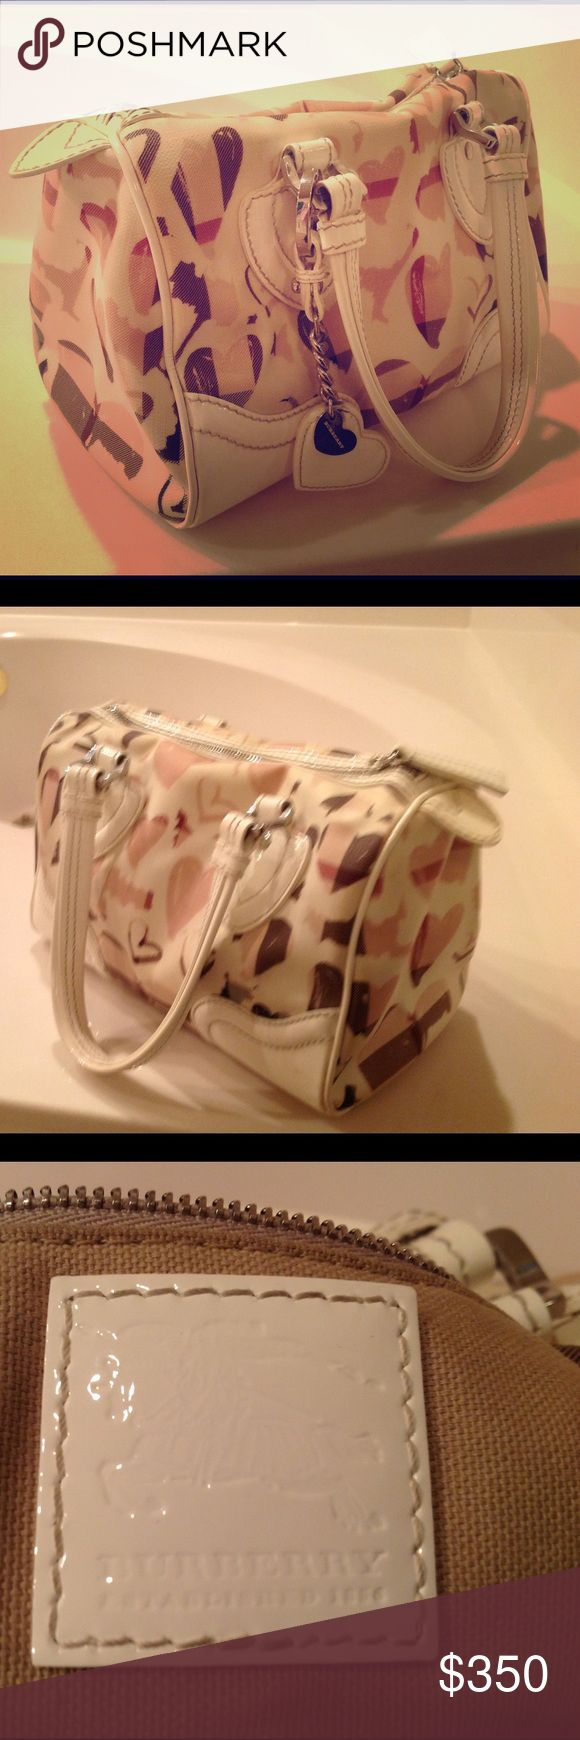 Burberry limited edition purse Very nice condition. Beautiful purse. Burberry Bags